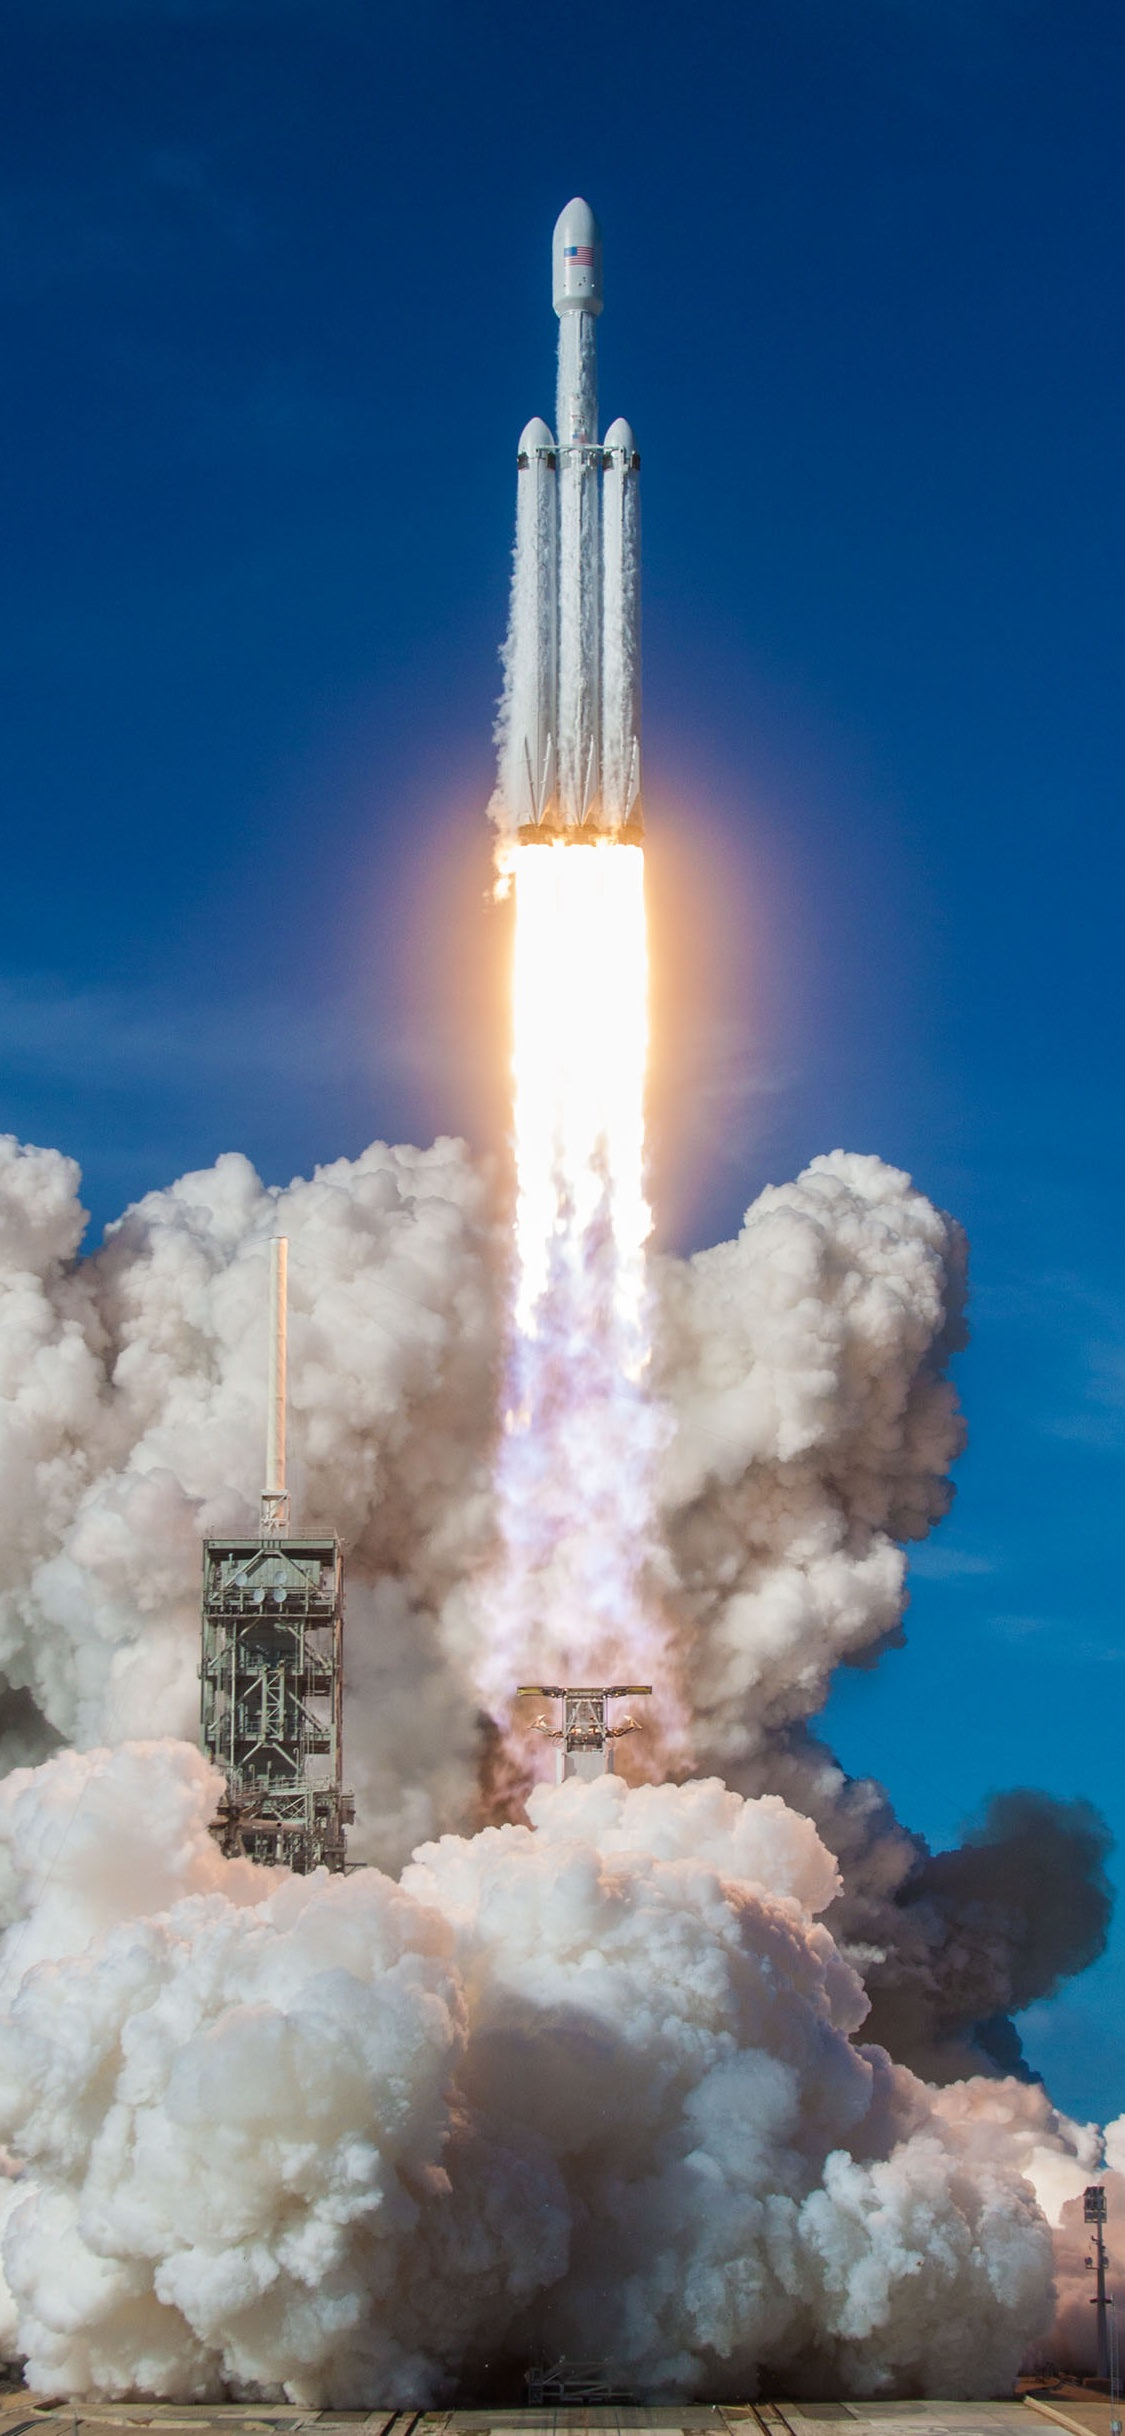 download 10 Amazing SpaceX Wallpapers for iPhone X Ep 12 iOS 1125x2436